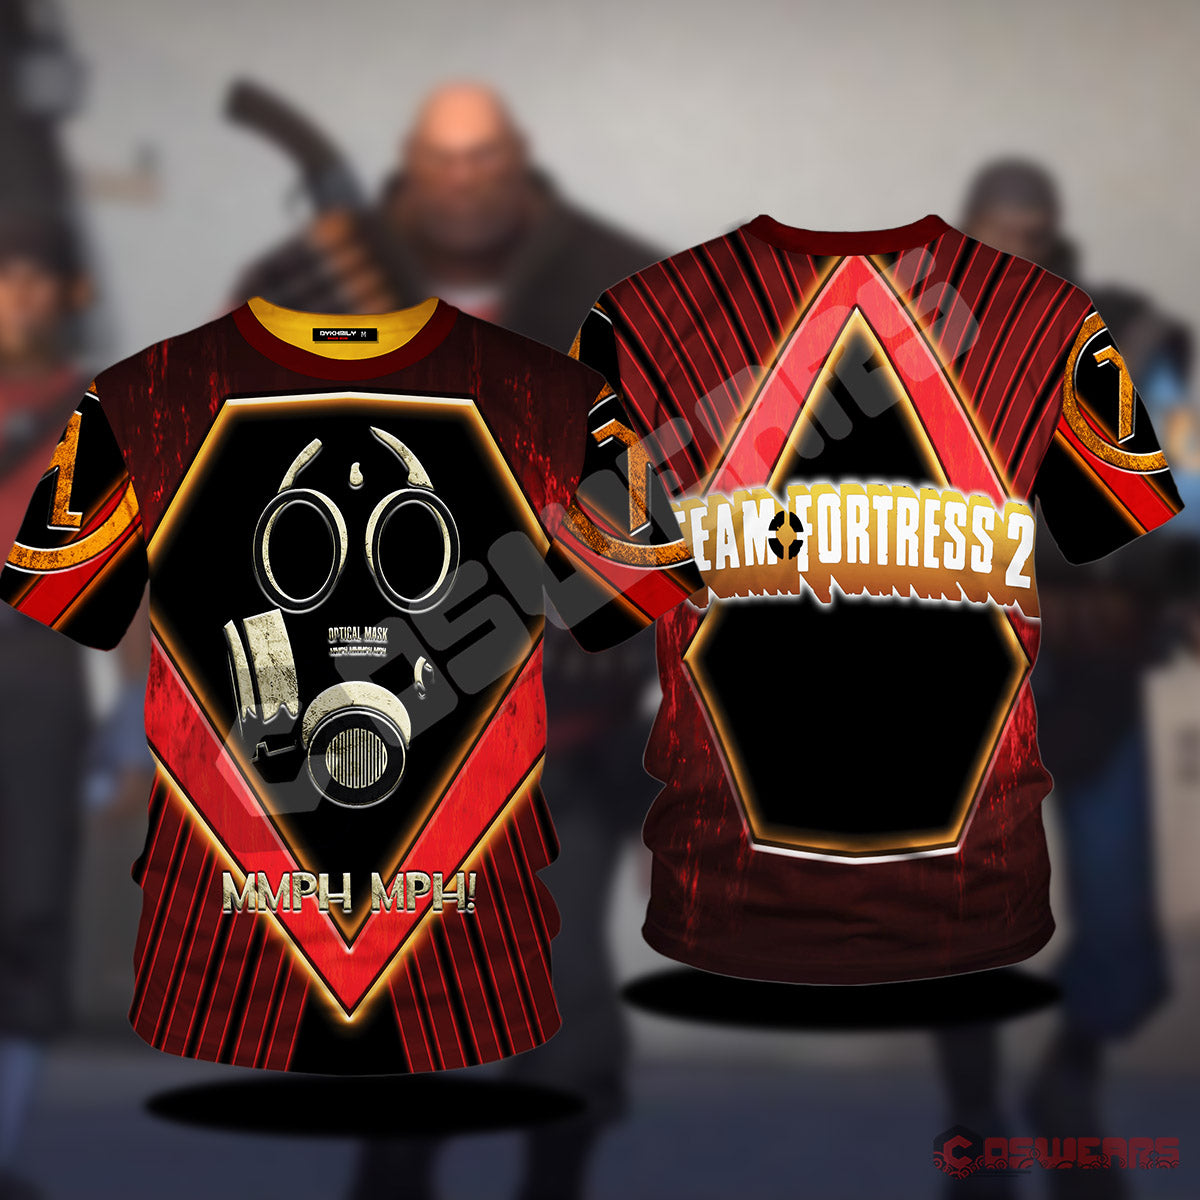 Team Fortress : Optical Mask Inspired T-Shirt